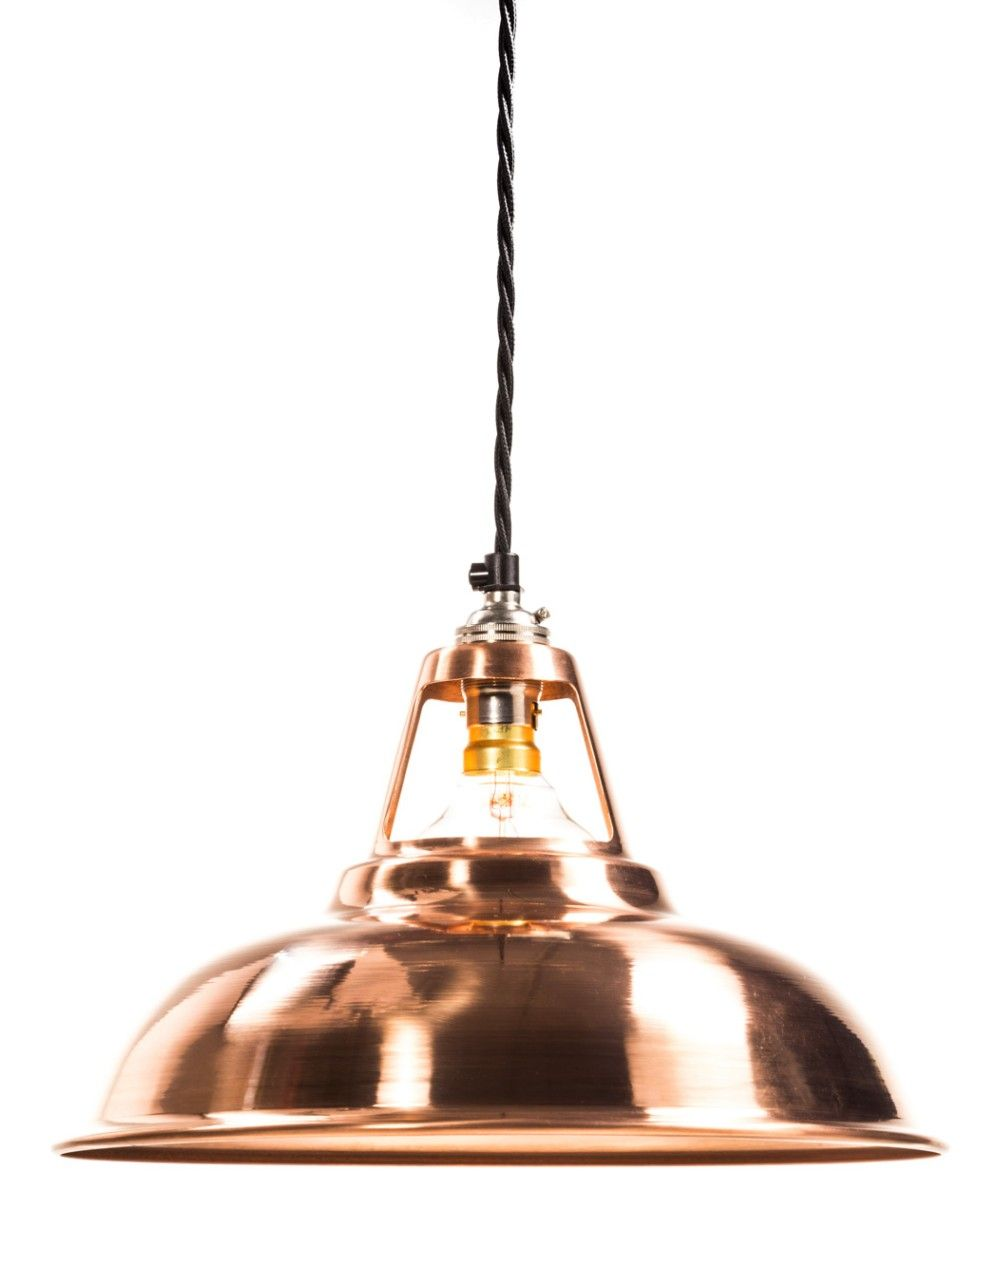 Factorylux Made In Uk Hand Spun Solid Copper Coolicon Lamp Shade Available As A Pendant Or Only